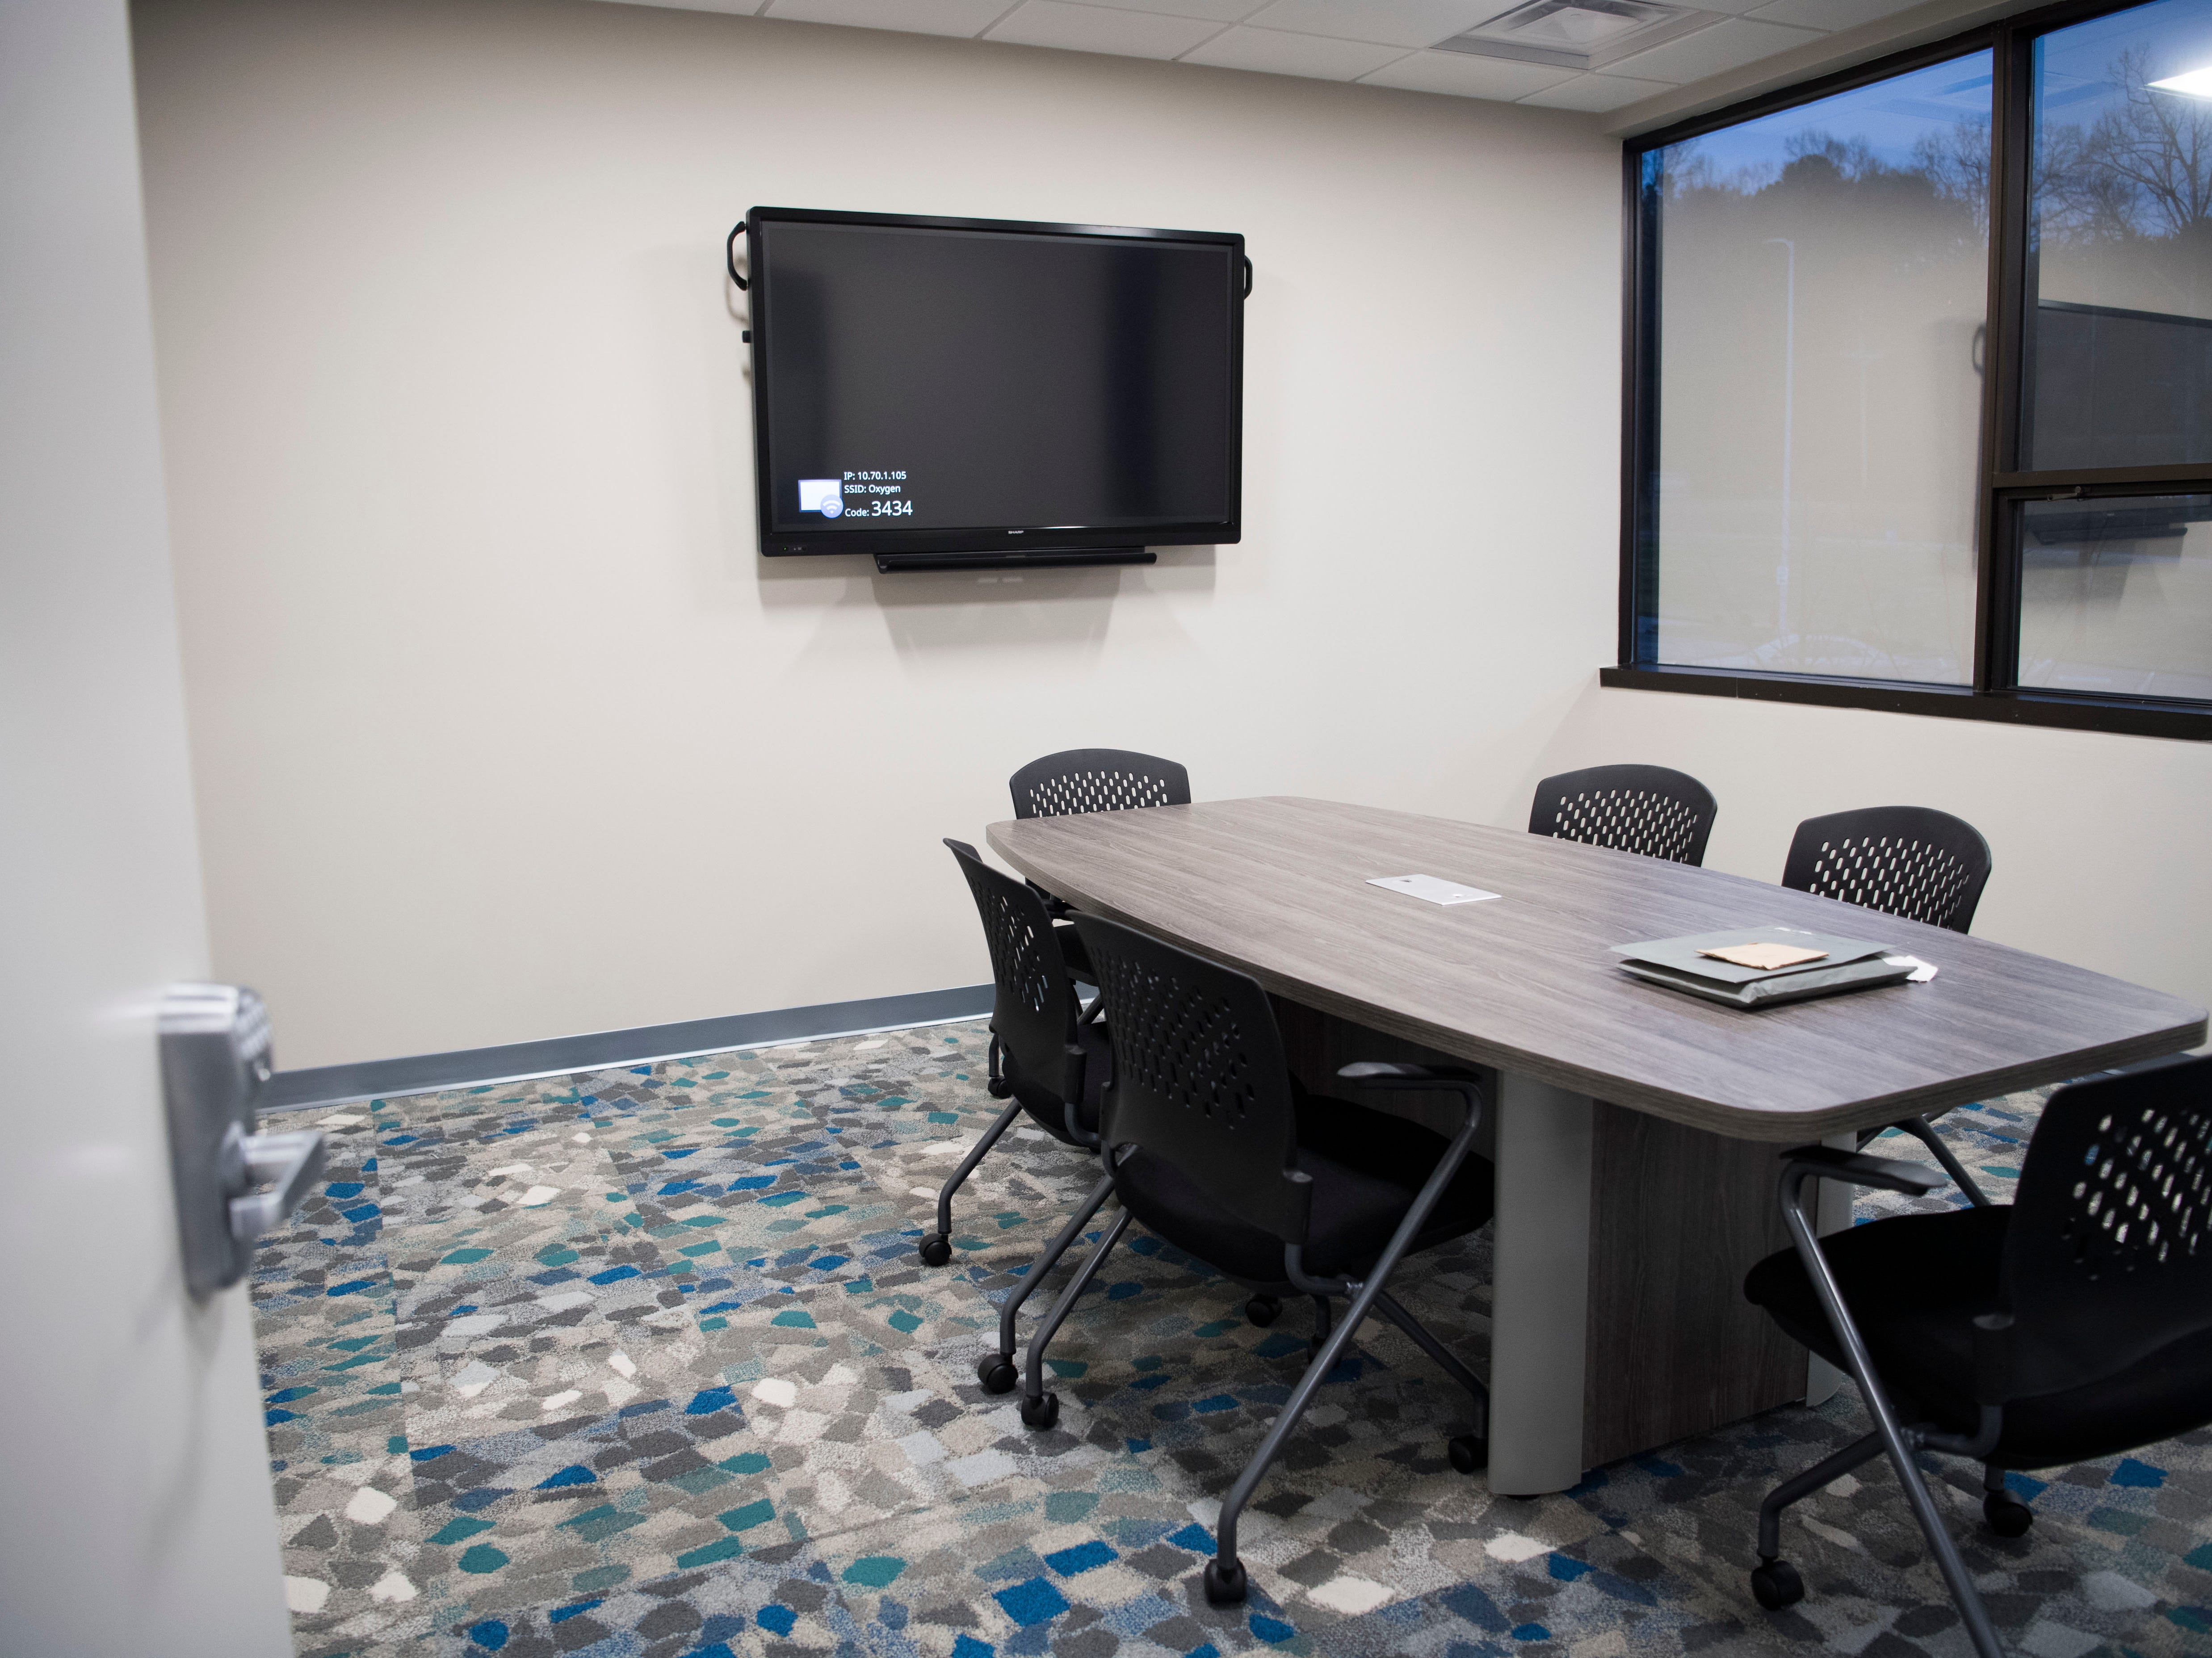 A smaller conference room in Ts117, a new coworking space in Oak Ridge run by brothers Rick and Ryan Chinn, Tuesday, Feb. 19, 2019.